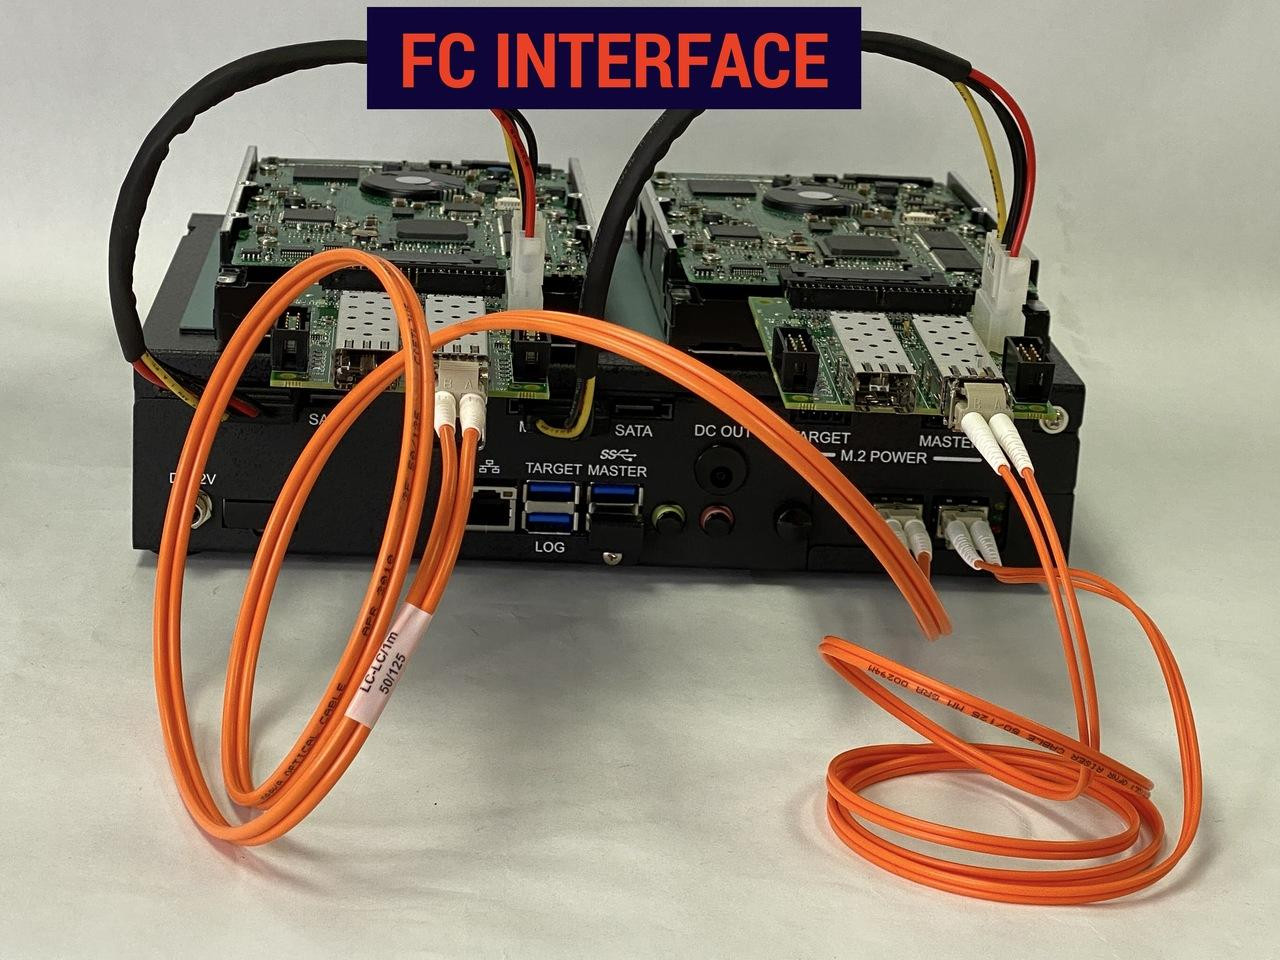 FX2260 with FC Interface ports at the Rear